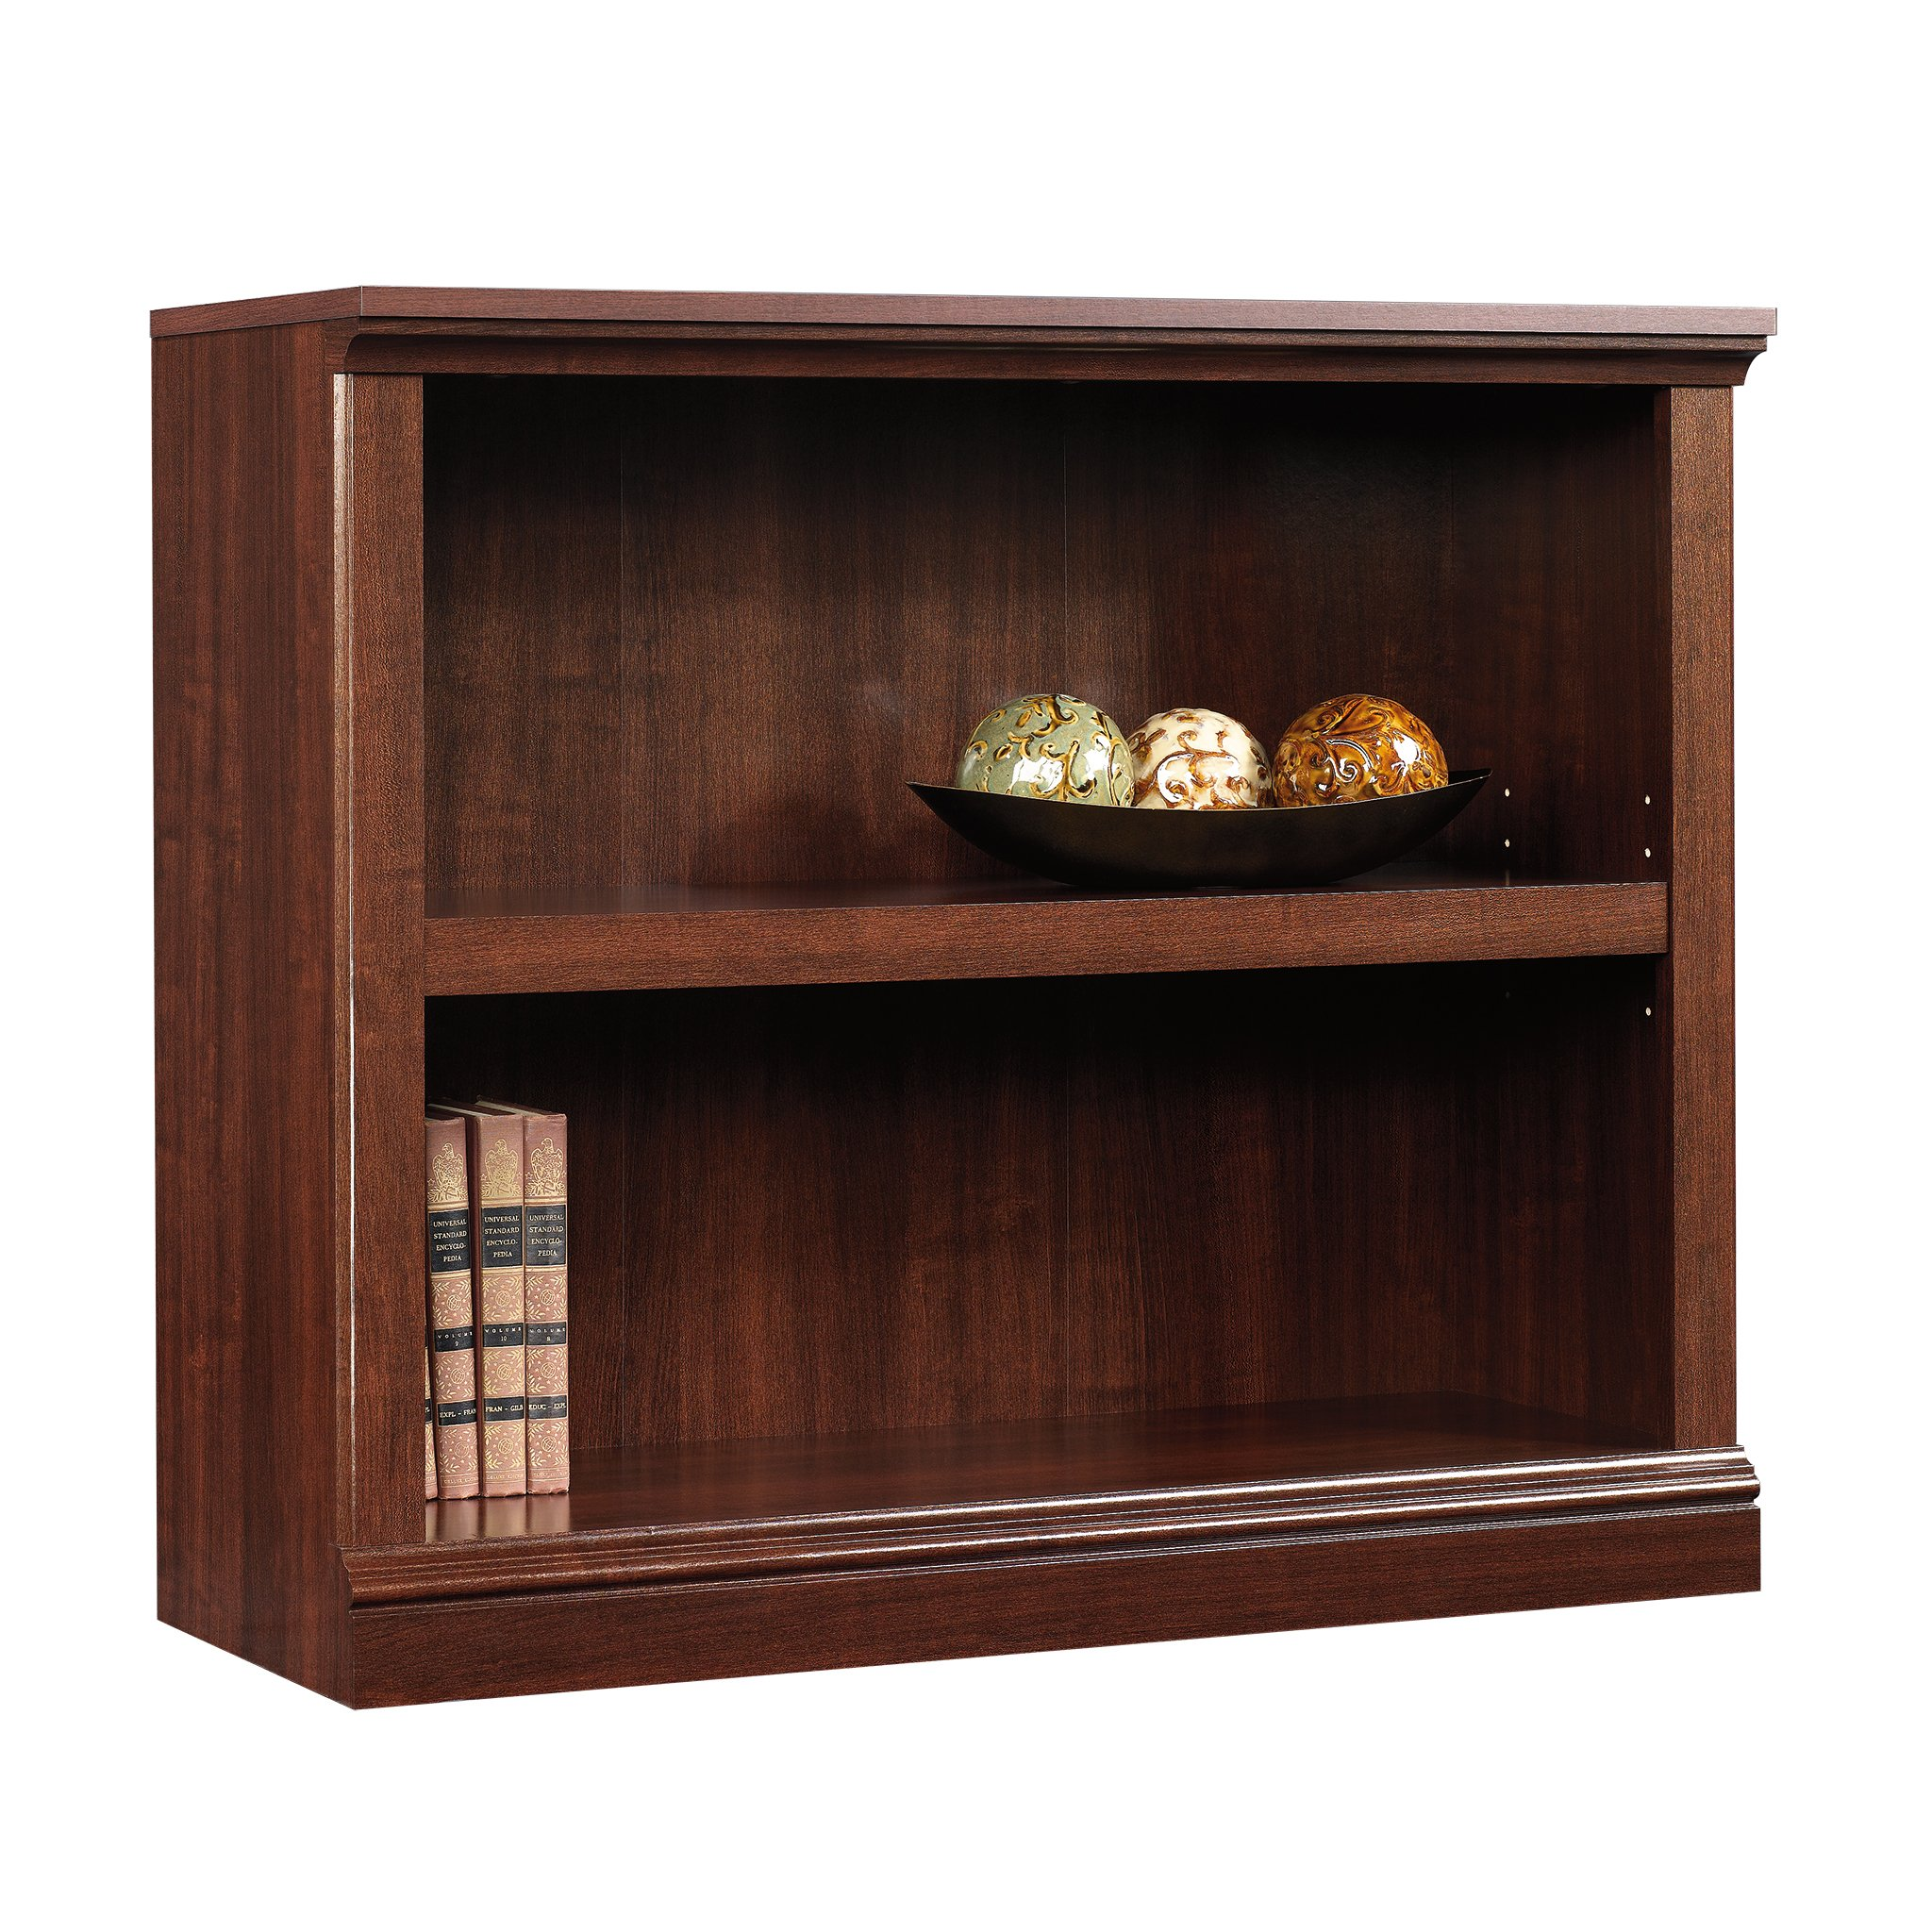 Sauder 2-Shelf Bookcase, Select Cherry Finish